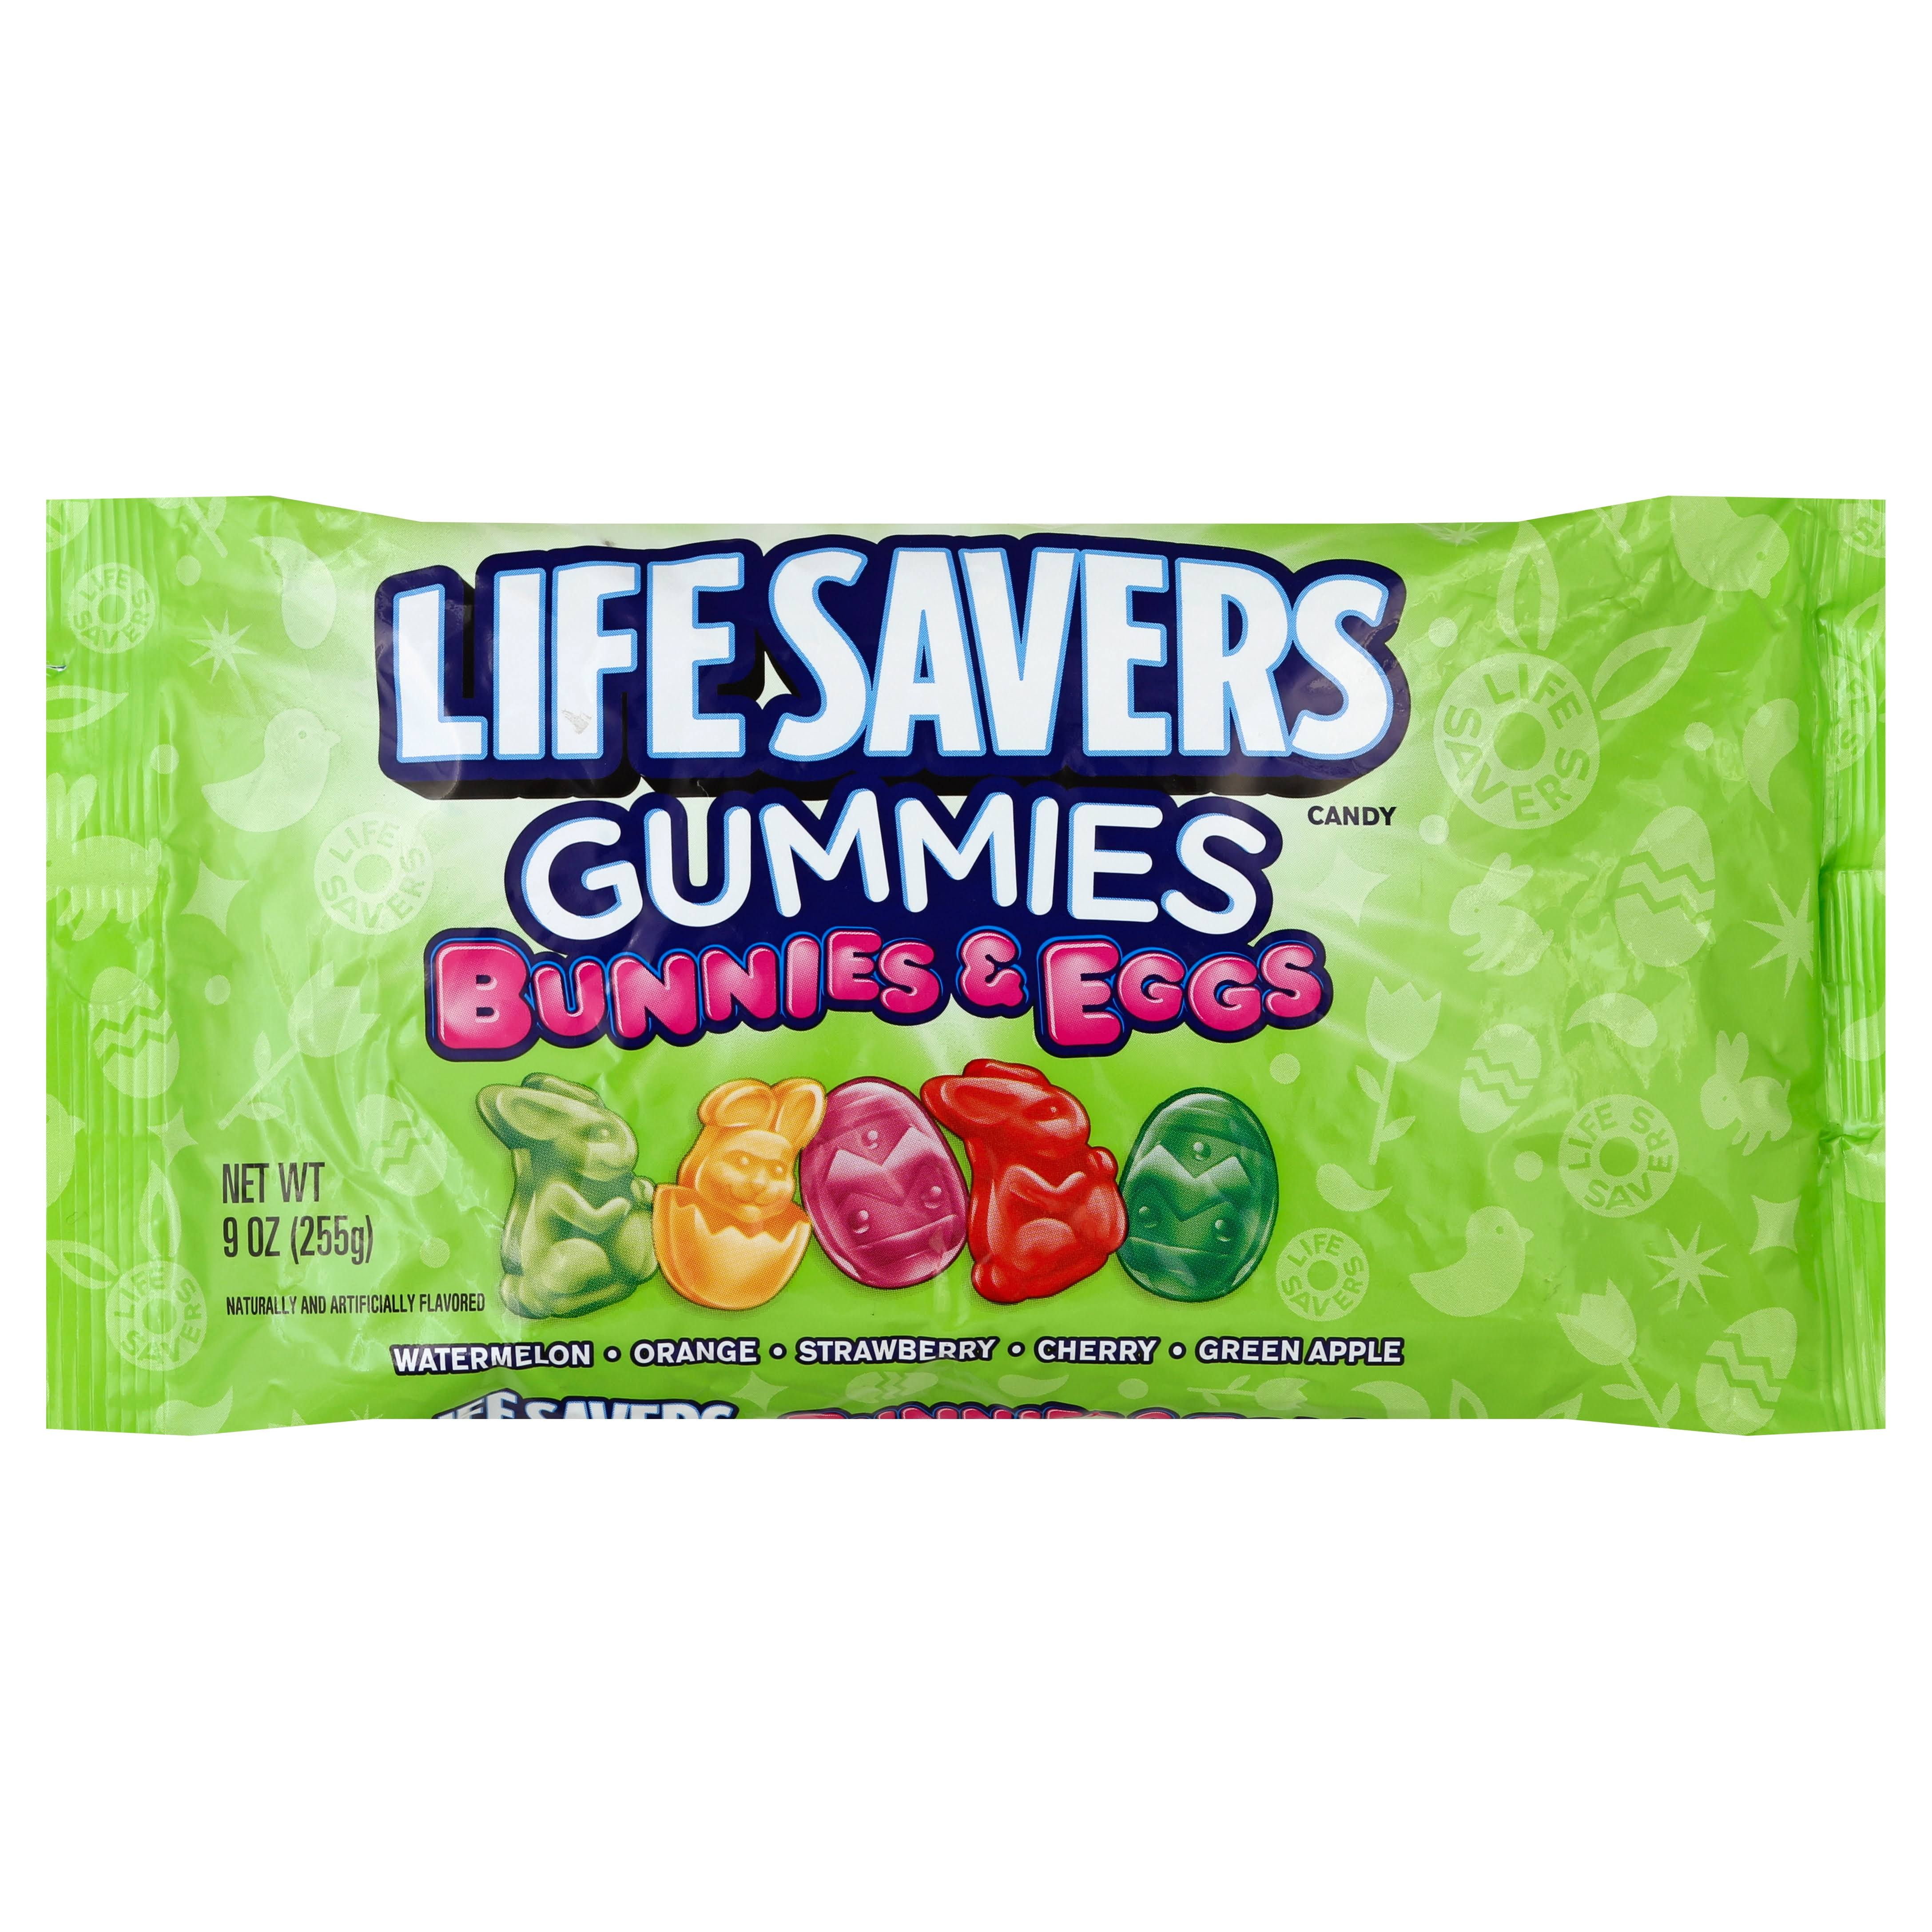 Lifesavers Bunnies and Eggs Gummies - 9oz